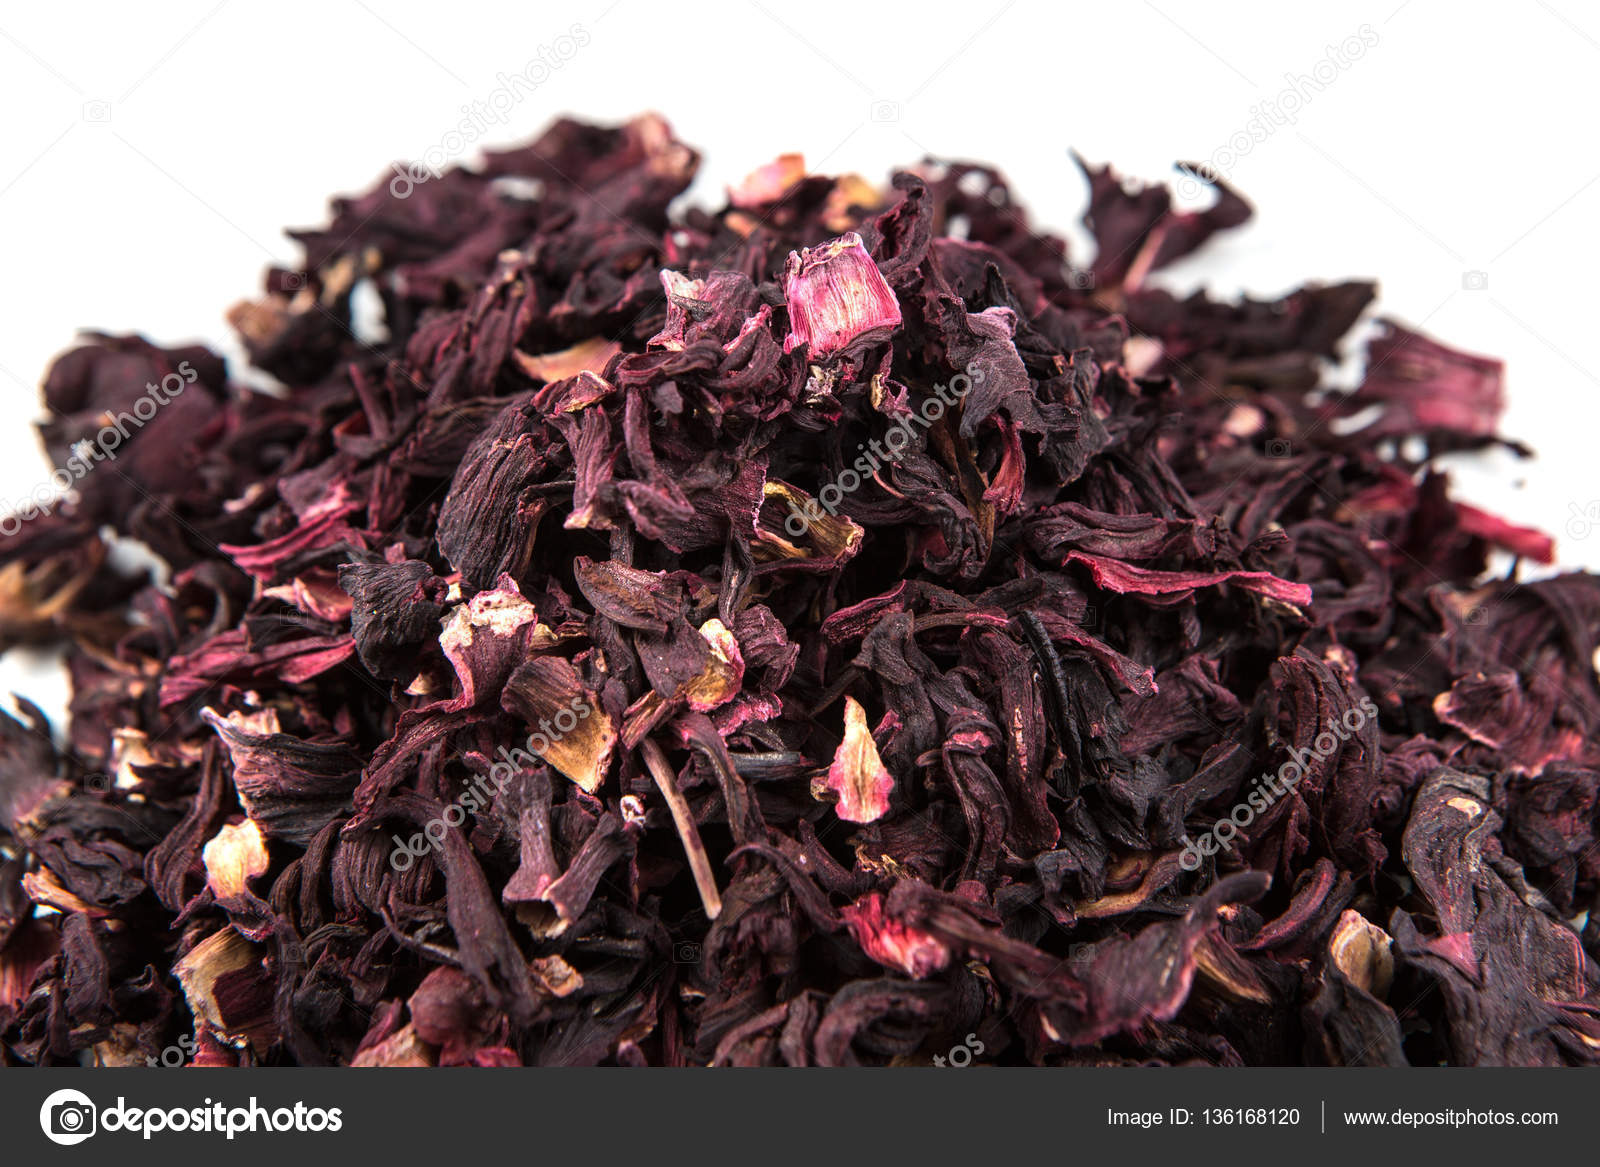 Dried hibiscus flower petals stock photo ecummings00 136168120 dried hibiscus flower petals stock photo izmirmasajfo Images